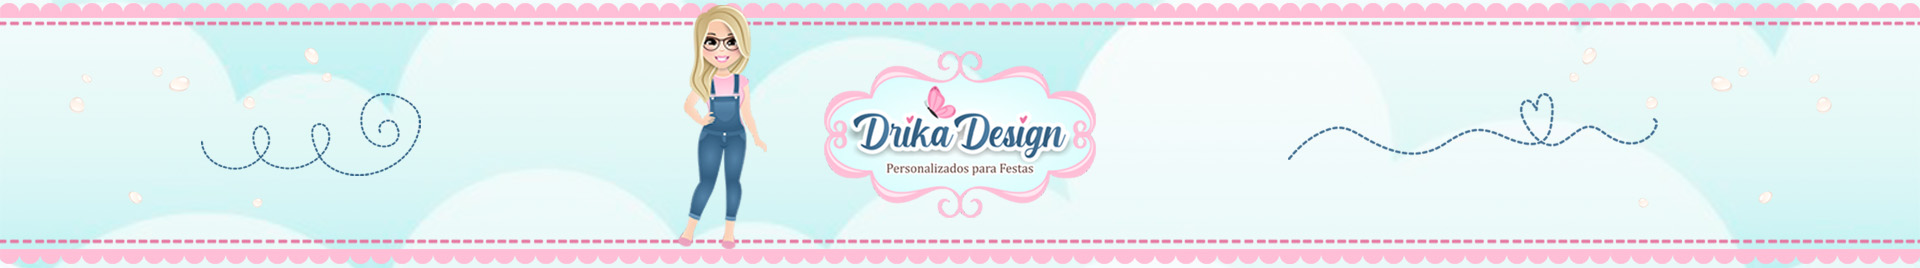 Drika Design